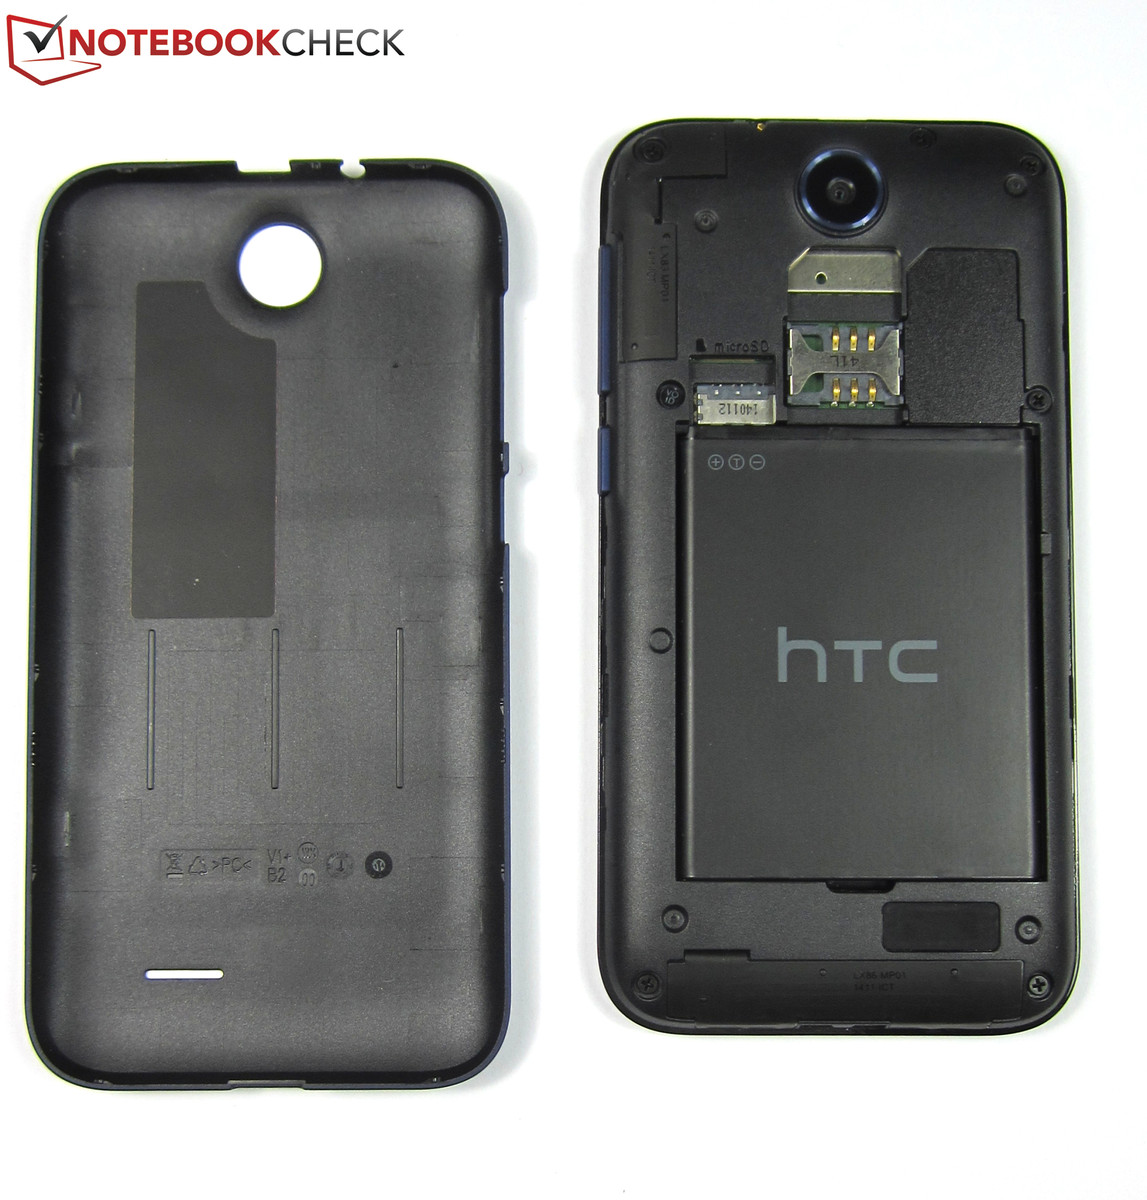 courte critique du smartphone htc desire 310. Black Bedroom Furniture Sets. Home Design Ideas